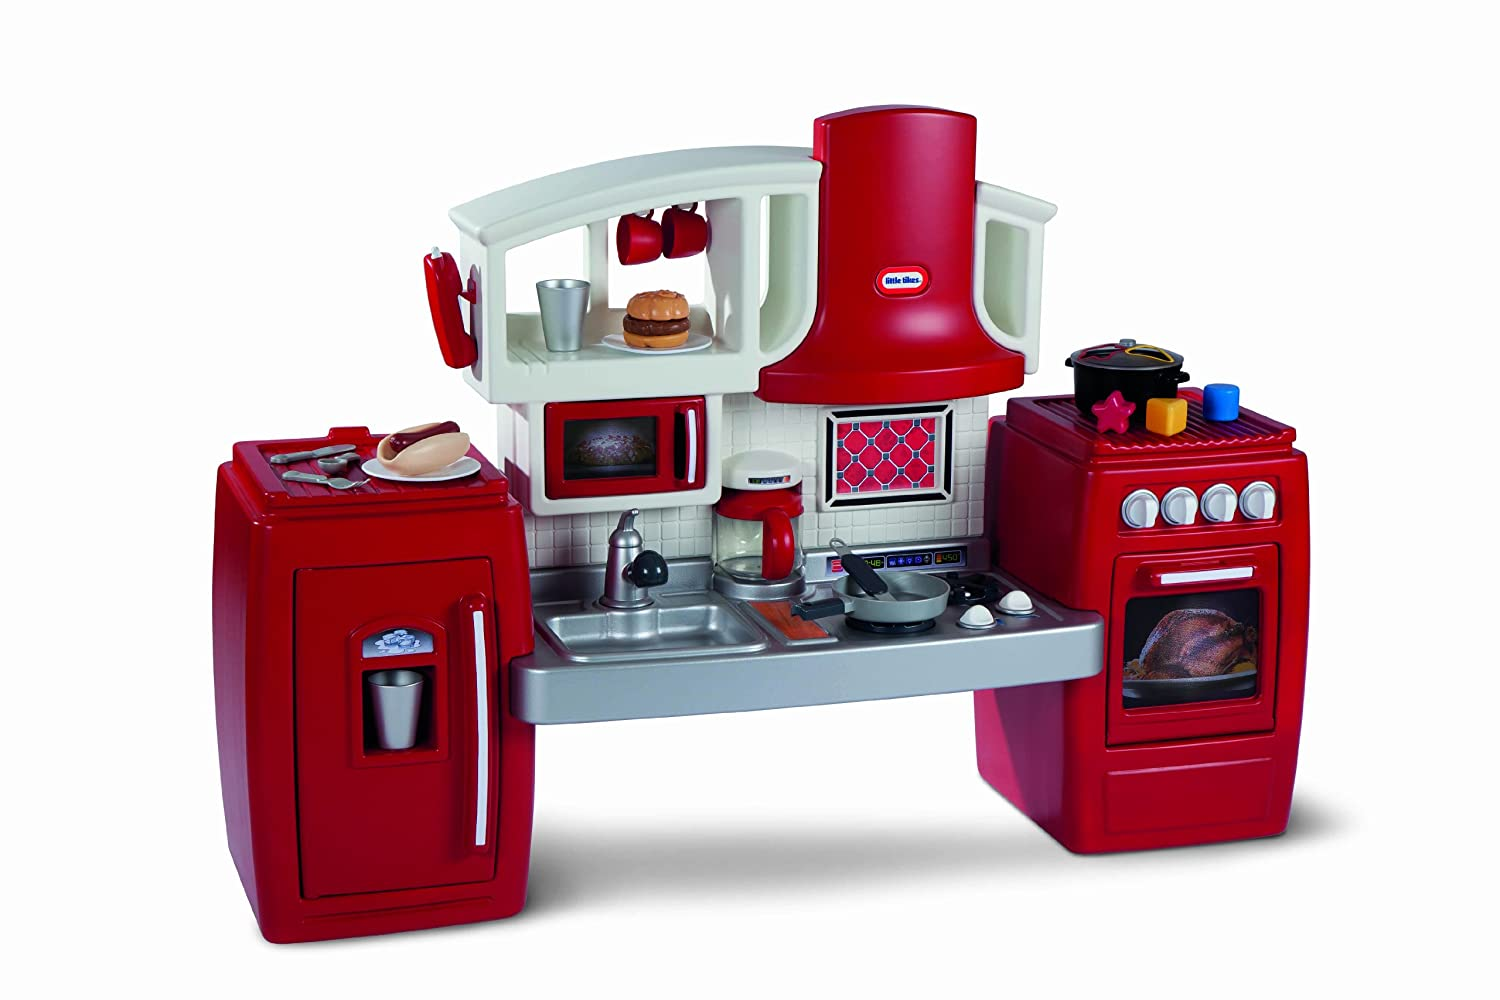 Cosy kitchen hutch cabinets marvelous inspiration Interior Freshomecom Amazoncom Little Tikes Cook Grow Kitchen Toys Games